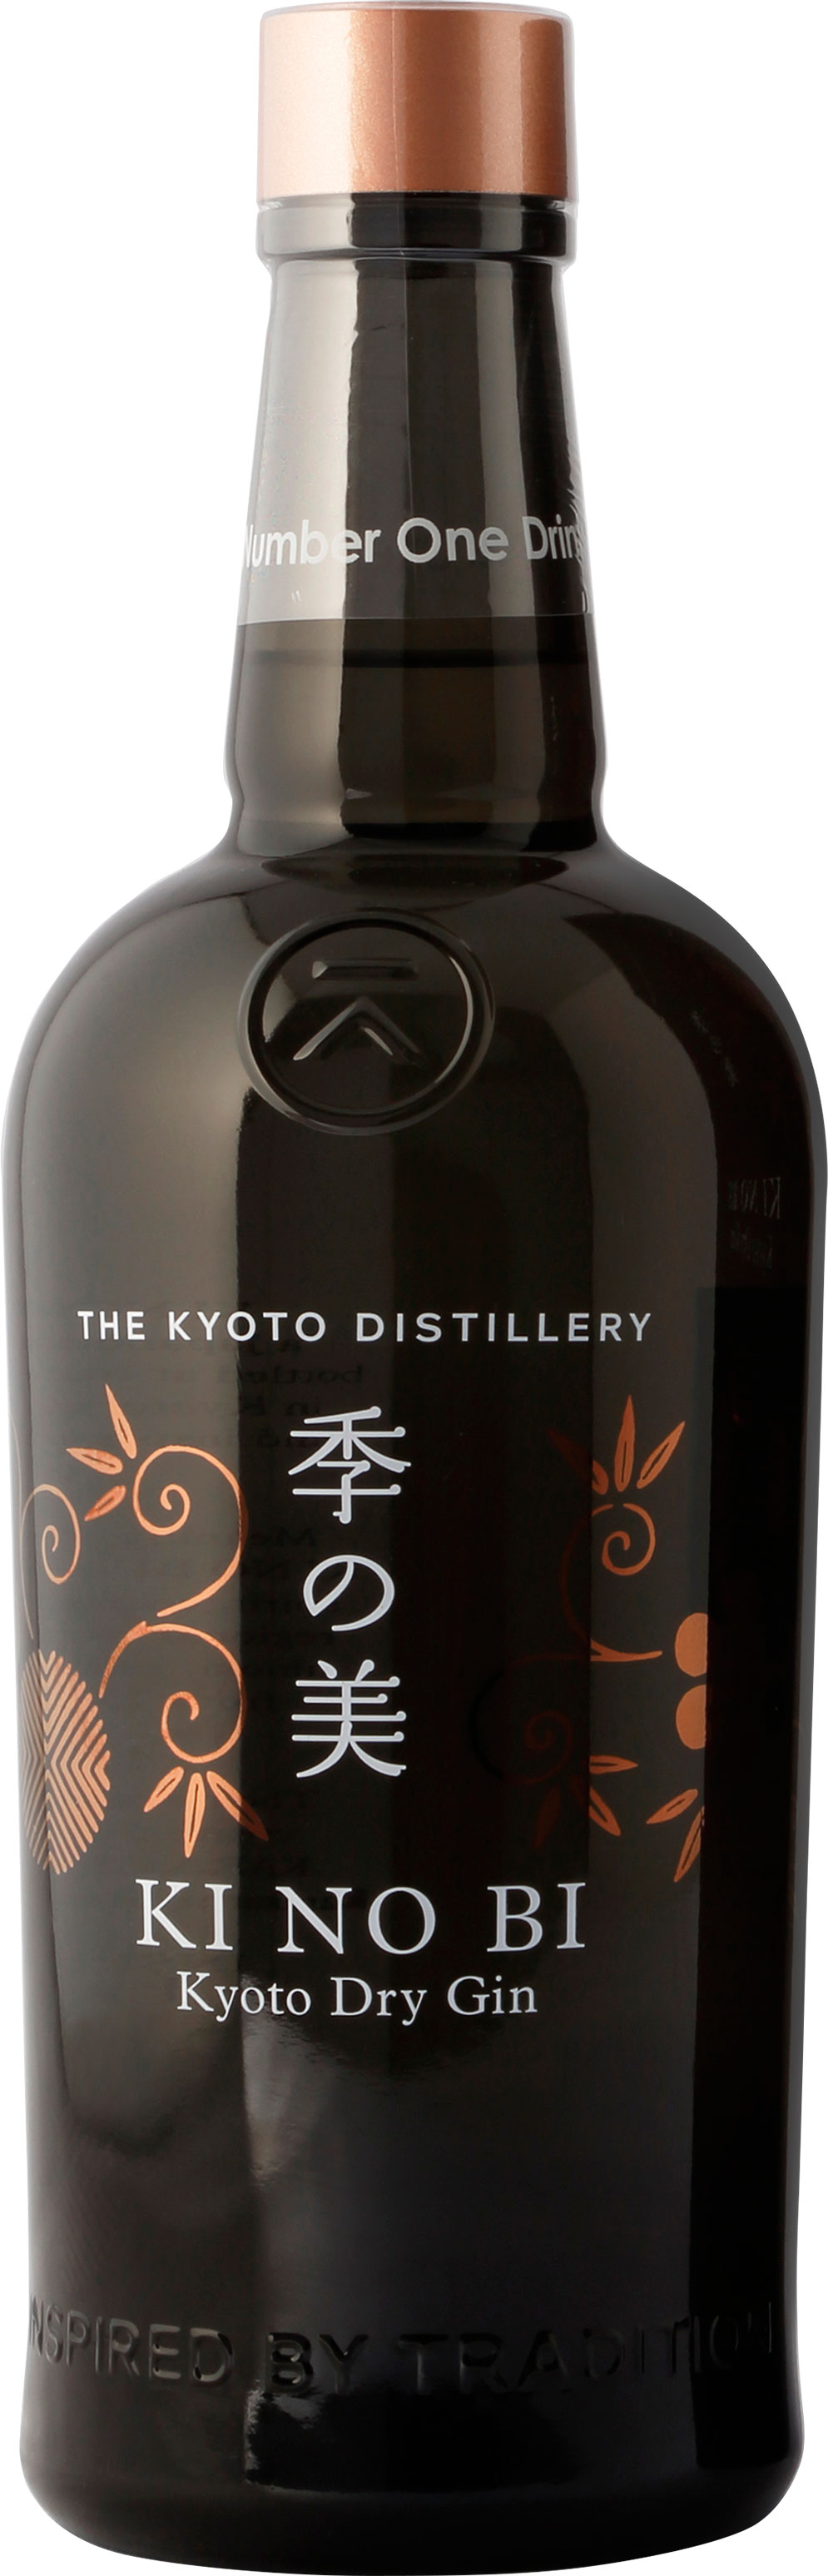 Ki No Bi - Kyoto Dry Gin 70cl Bottle